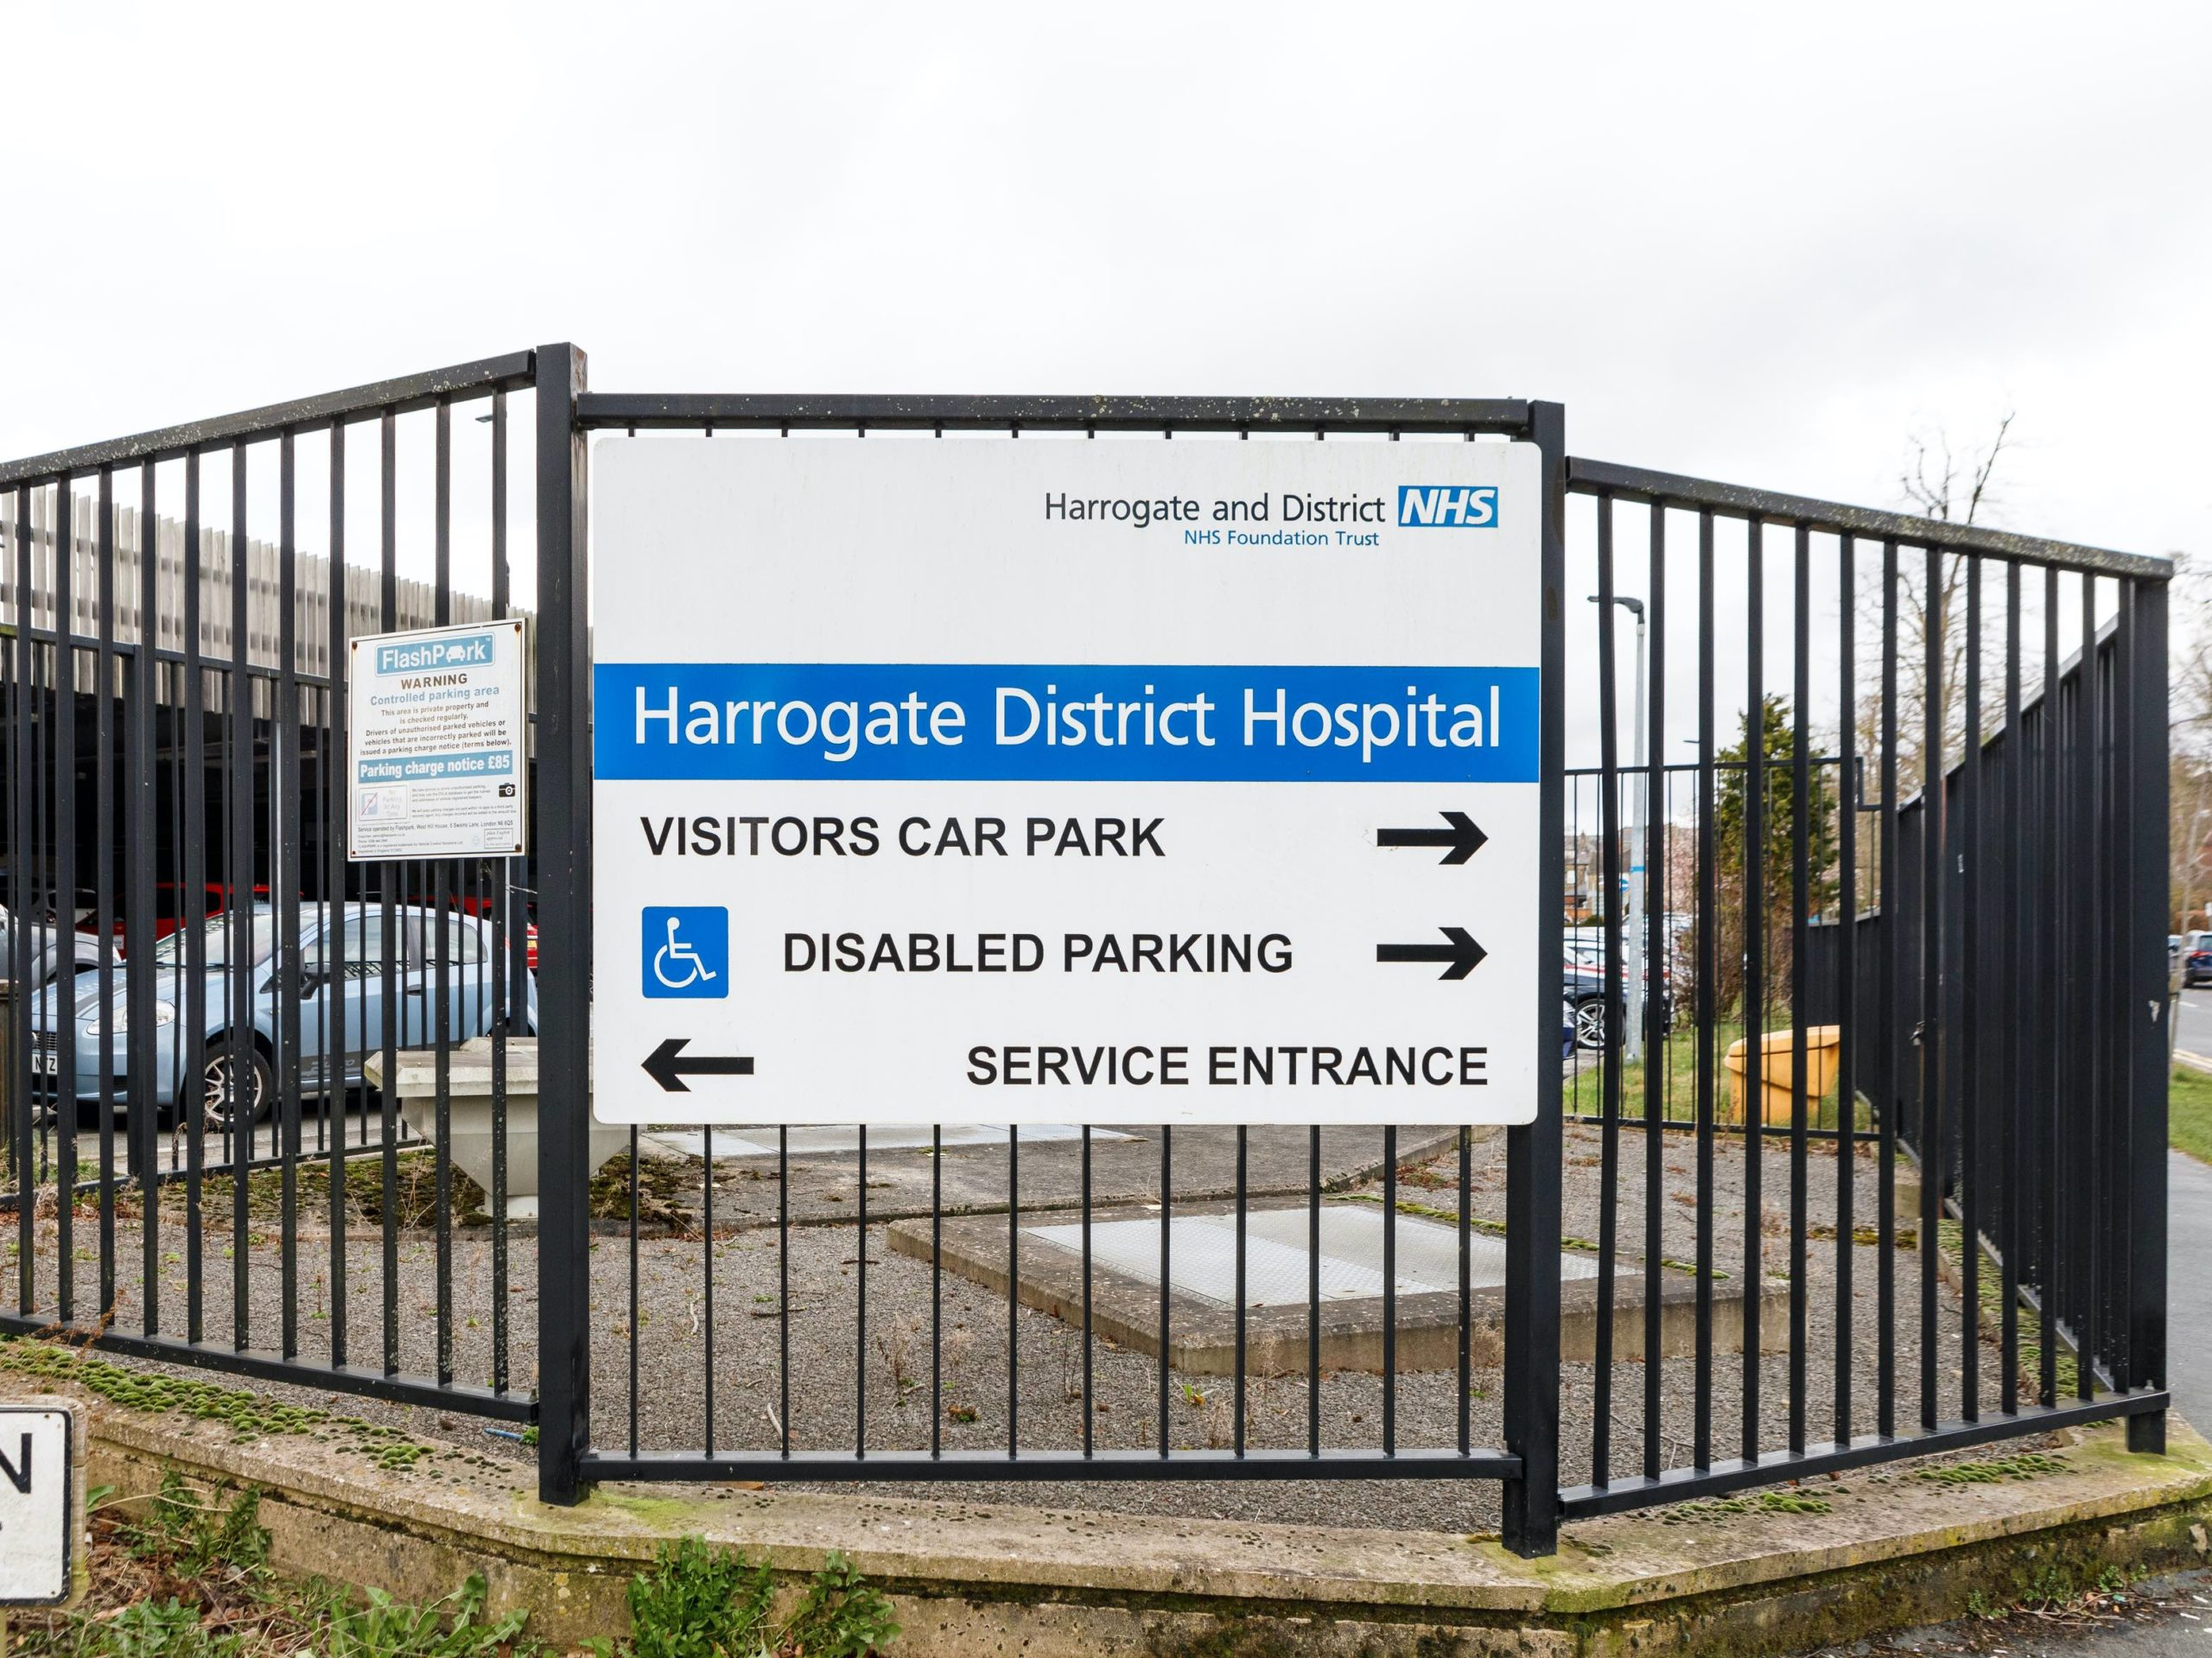 No further hospital Covid deaths in Harrogate district